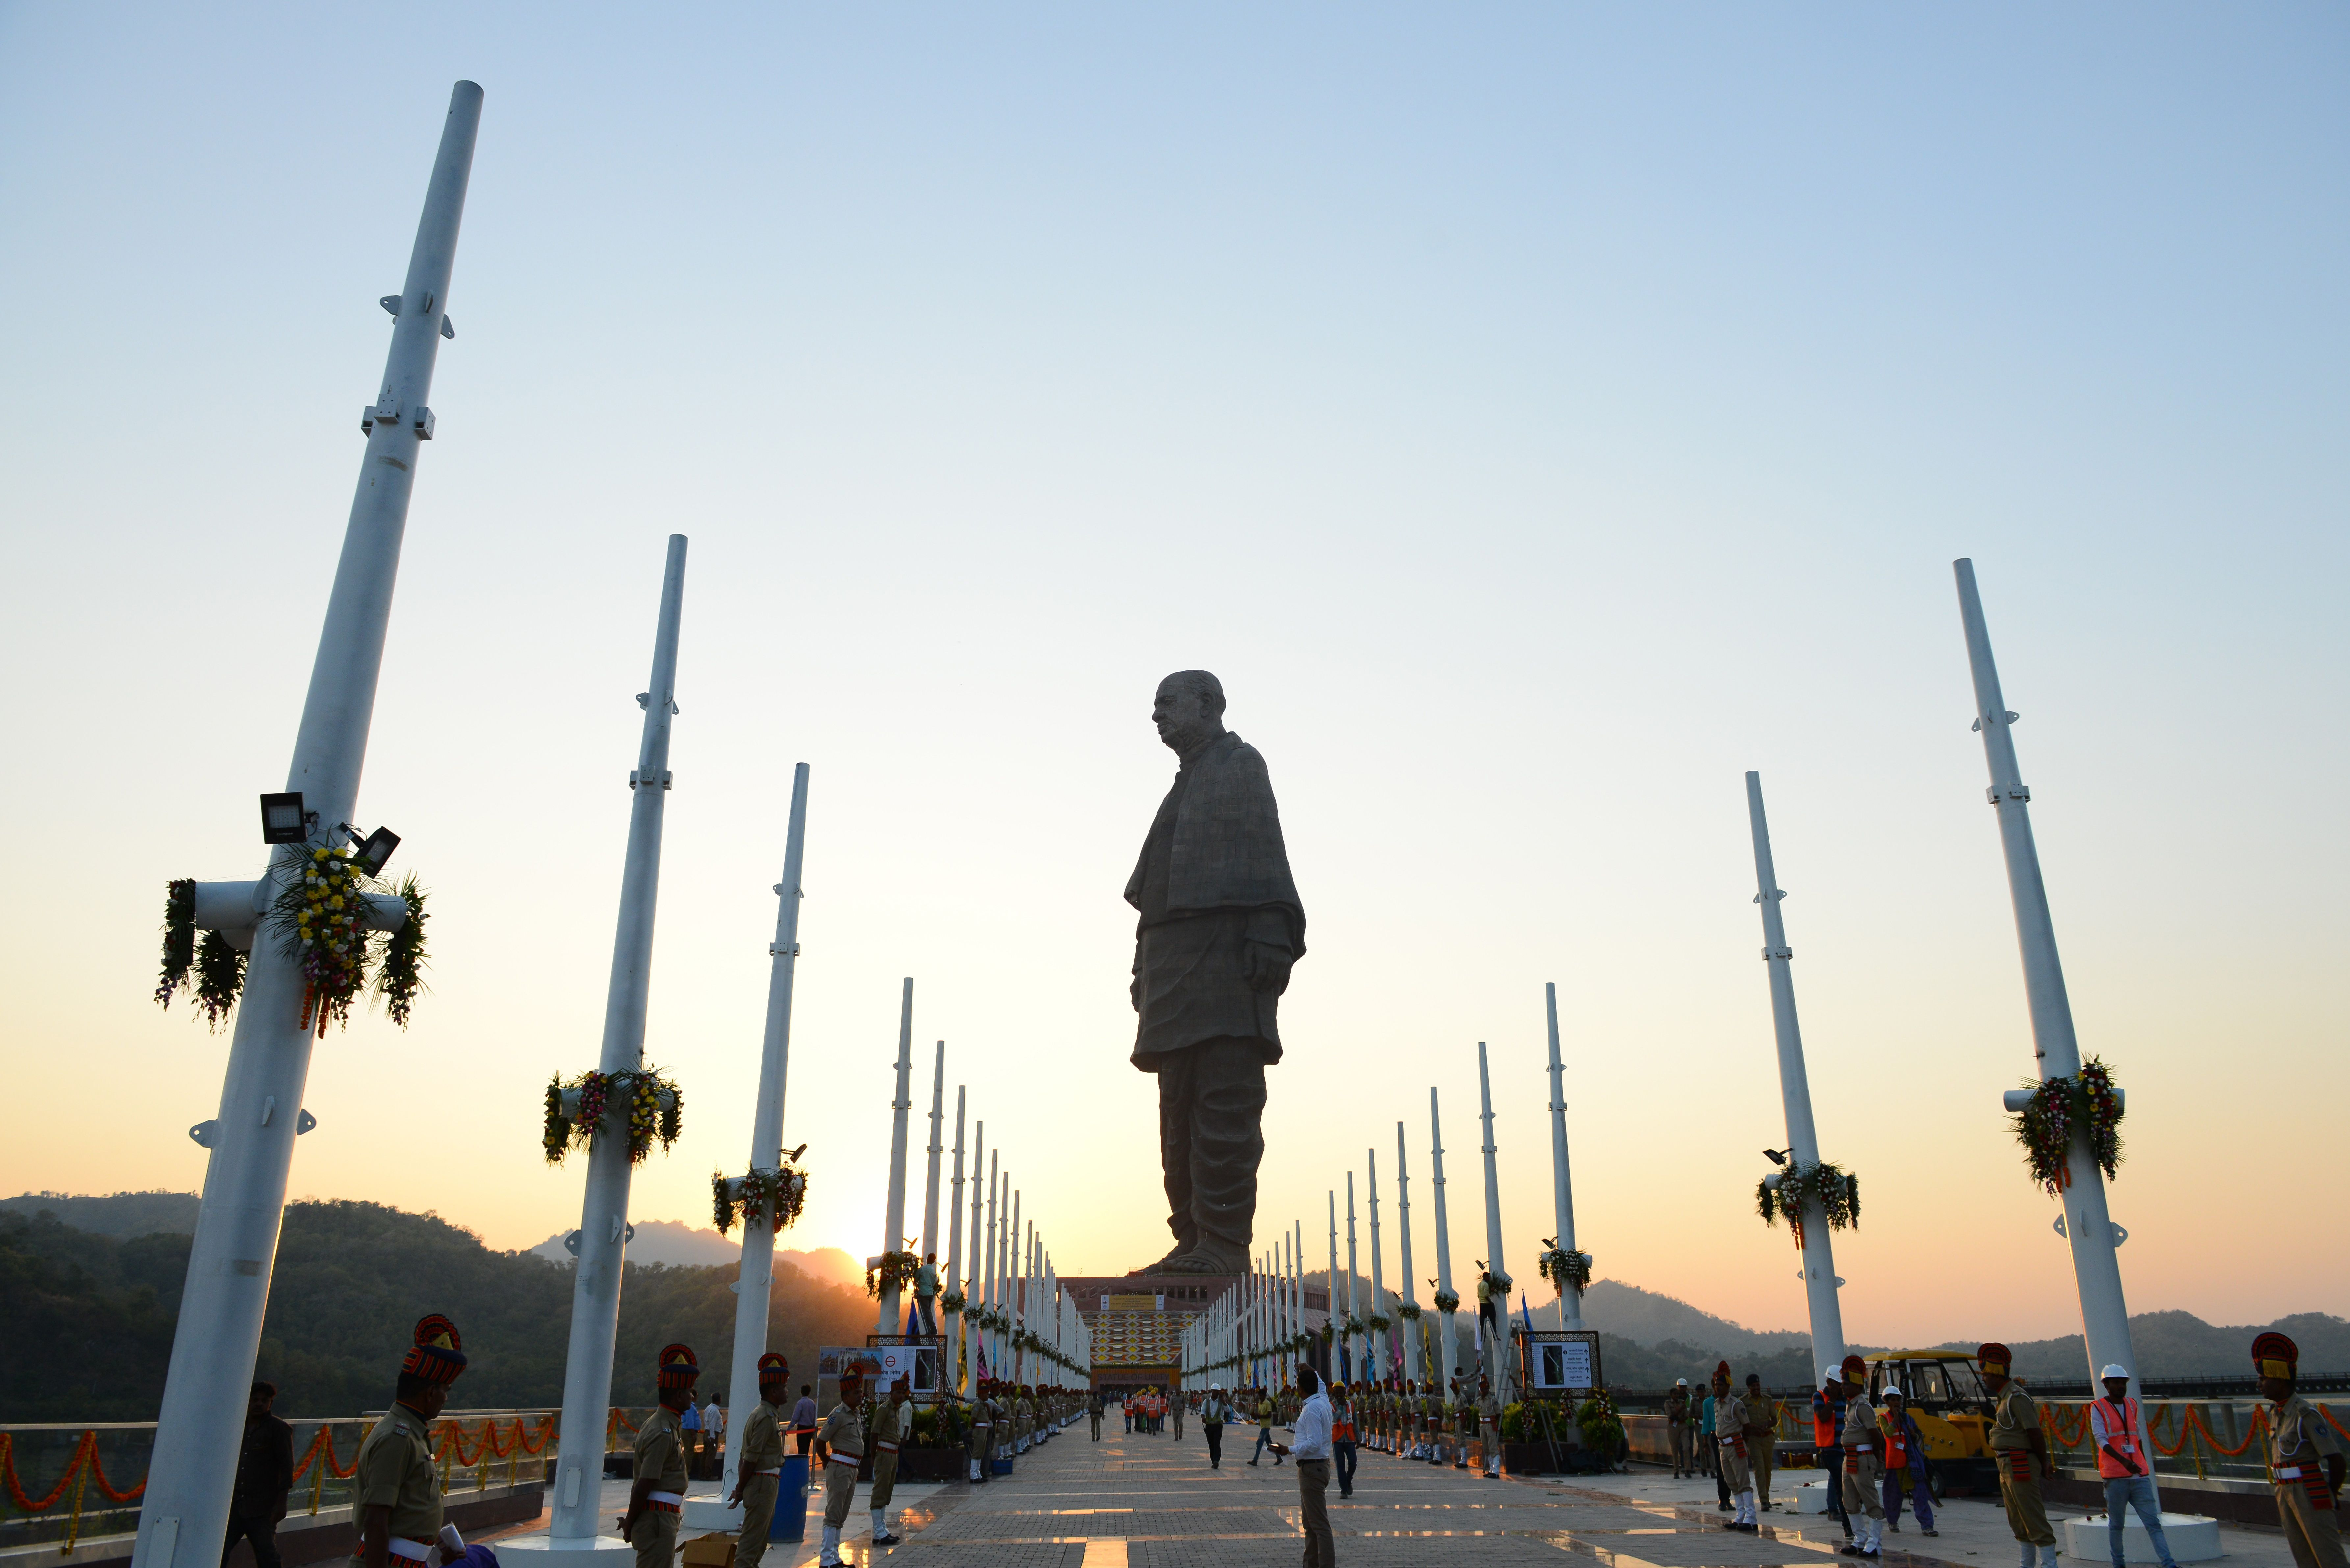 Indian policemen stand guard near the  Statue Of Unity,  the world's tallest statue dedicated to Indian independence leader Sardar Vallabhbhai Patel, near Vadodara in India's western Gujarat state on October 31, 2018.